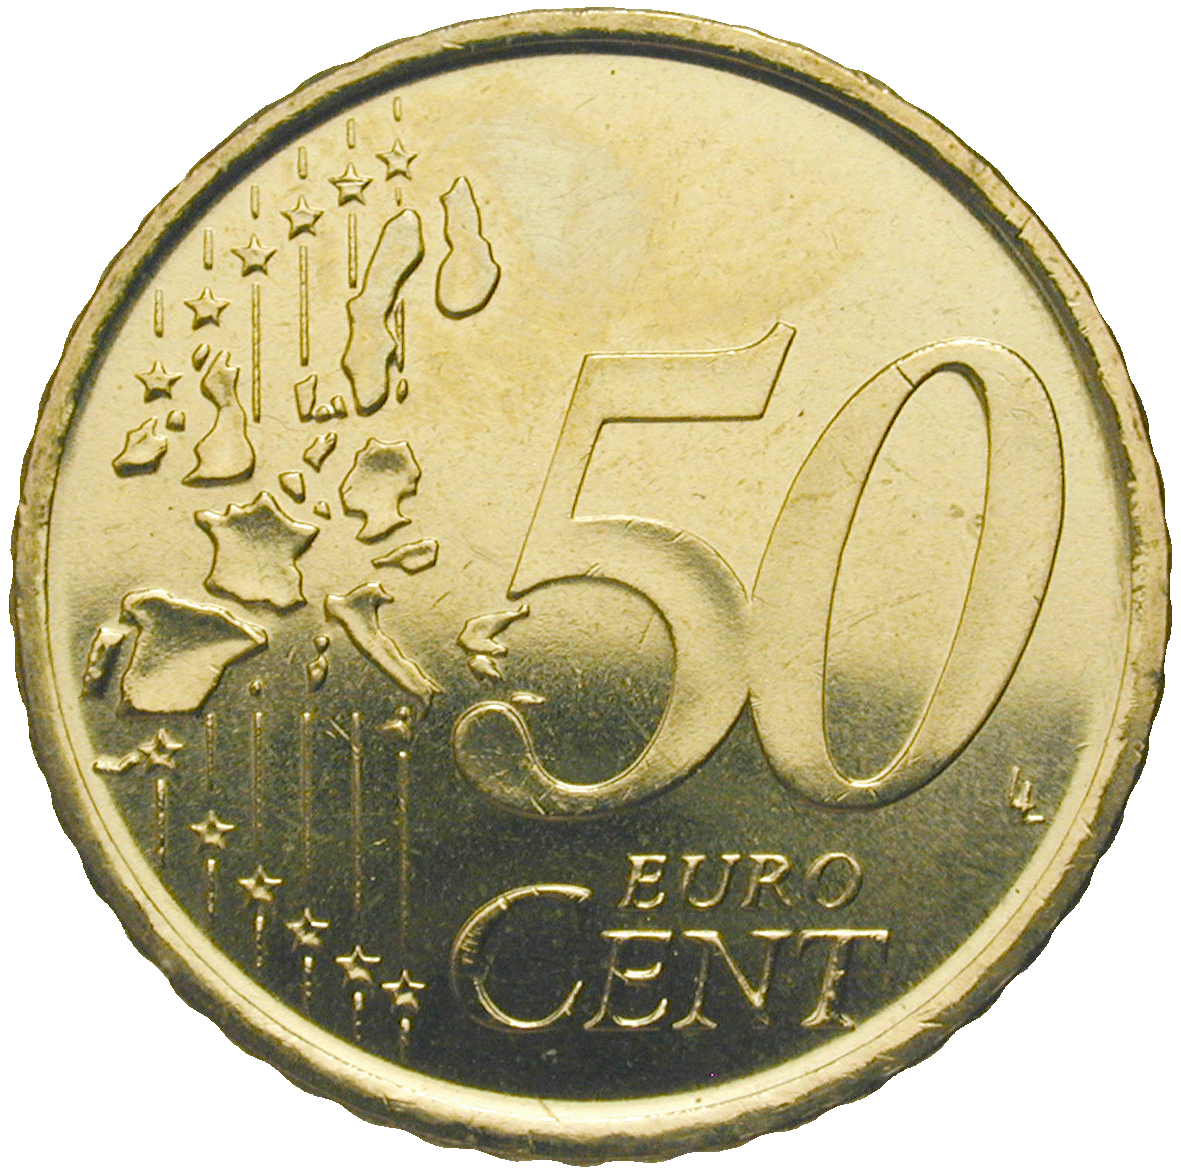 Kingdom of Spain, Juan Carlos, 50 Euro Cent 1999 (reverse)